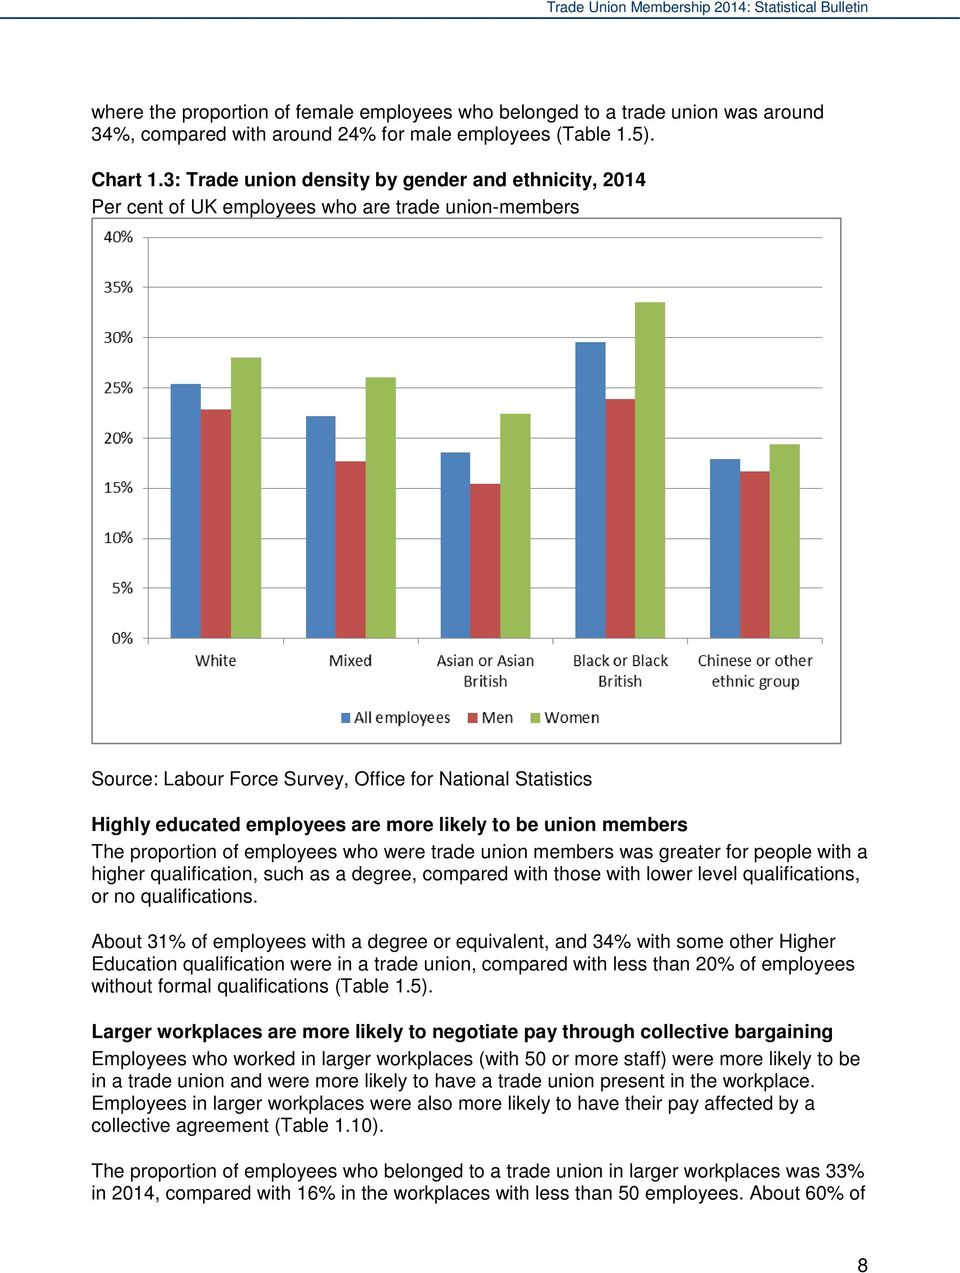 more likely to be union members The proportion of employees who were trade union members was greater for people with a higher qualification, such as a degree, compared with those with lower level